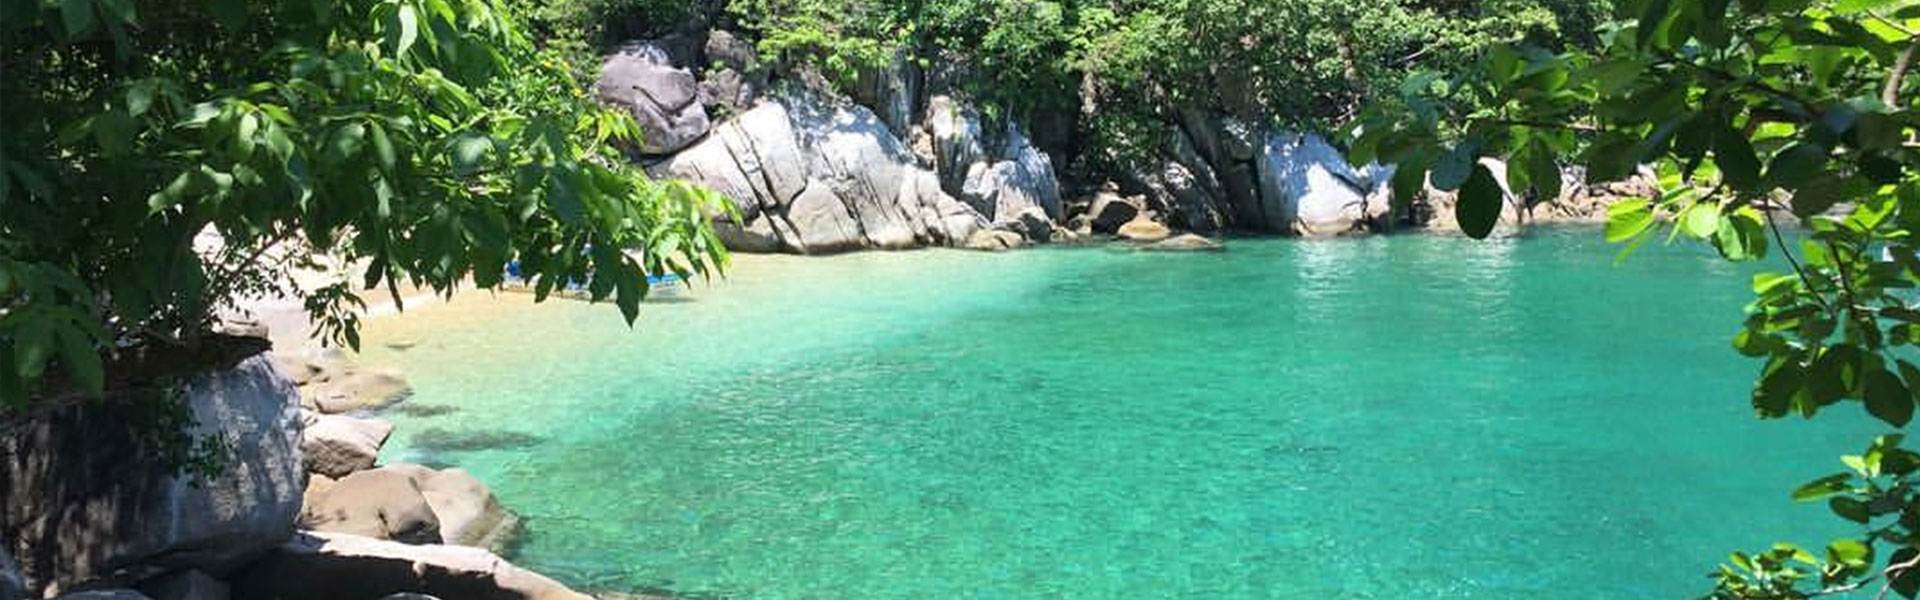 Hiking Adventures | Puerto Vallarta Hiking Tours | The Hiking Adventure is Awaiting